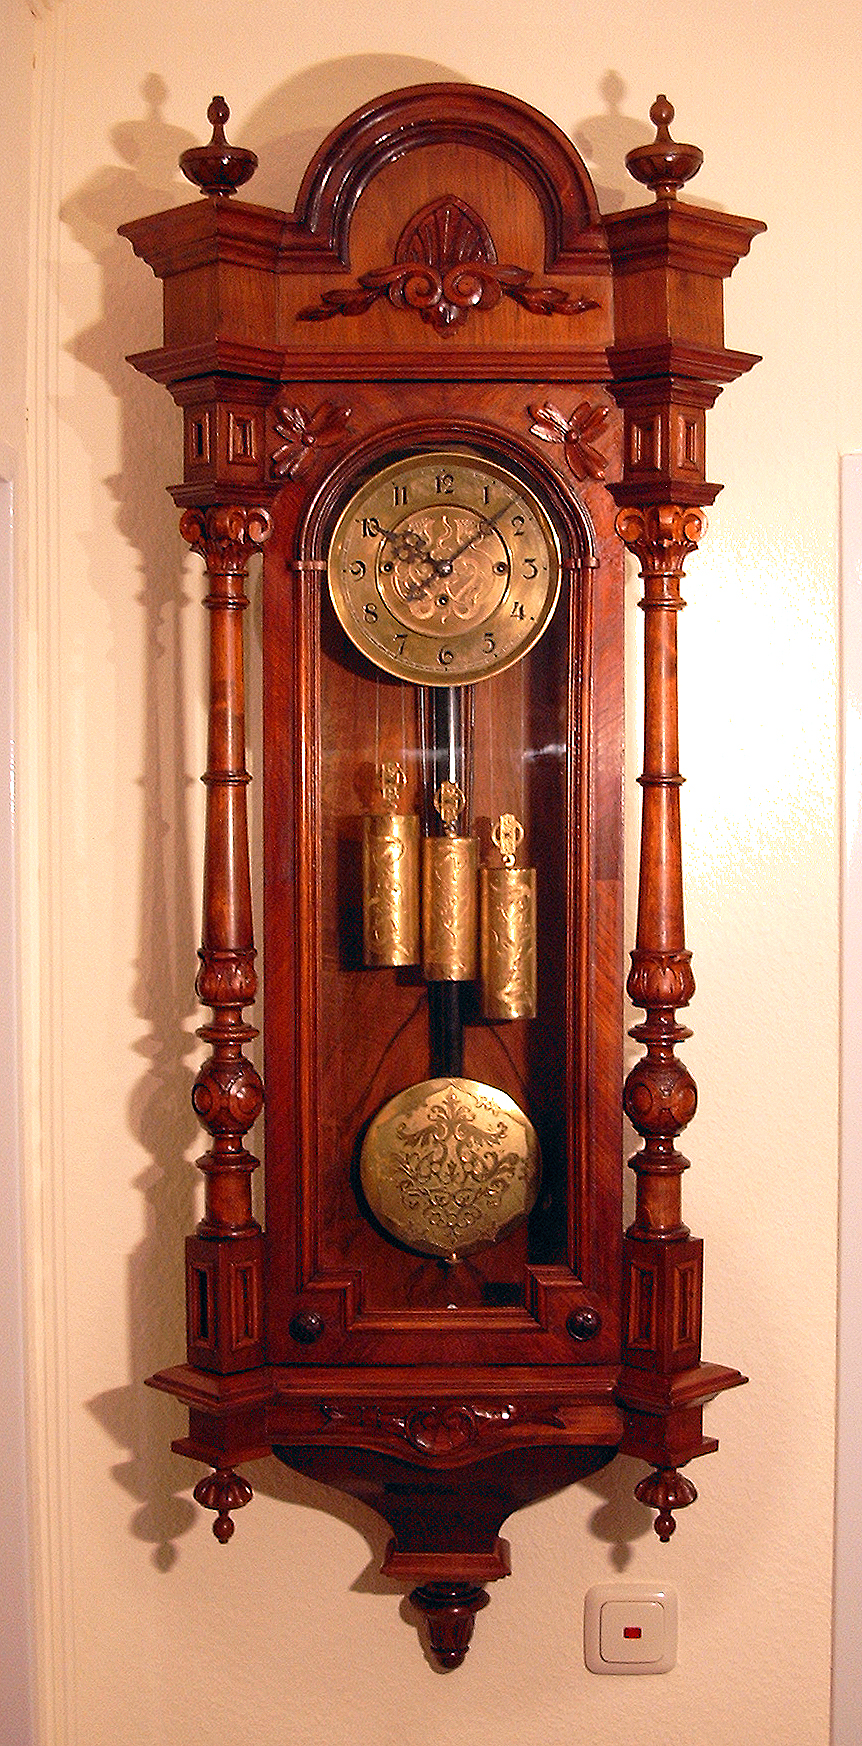 Gustav becker wikipedia - Wall mounted grandfather clock ...